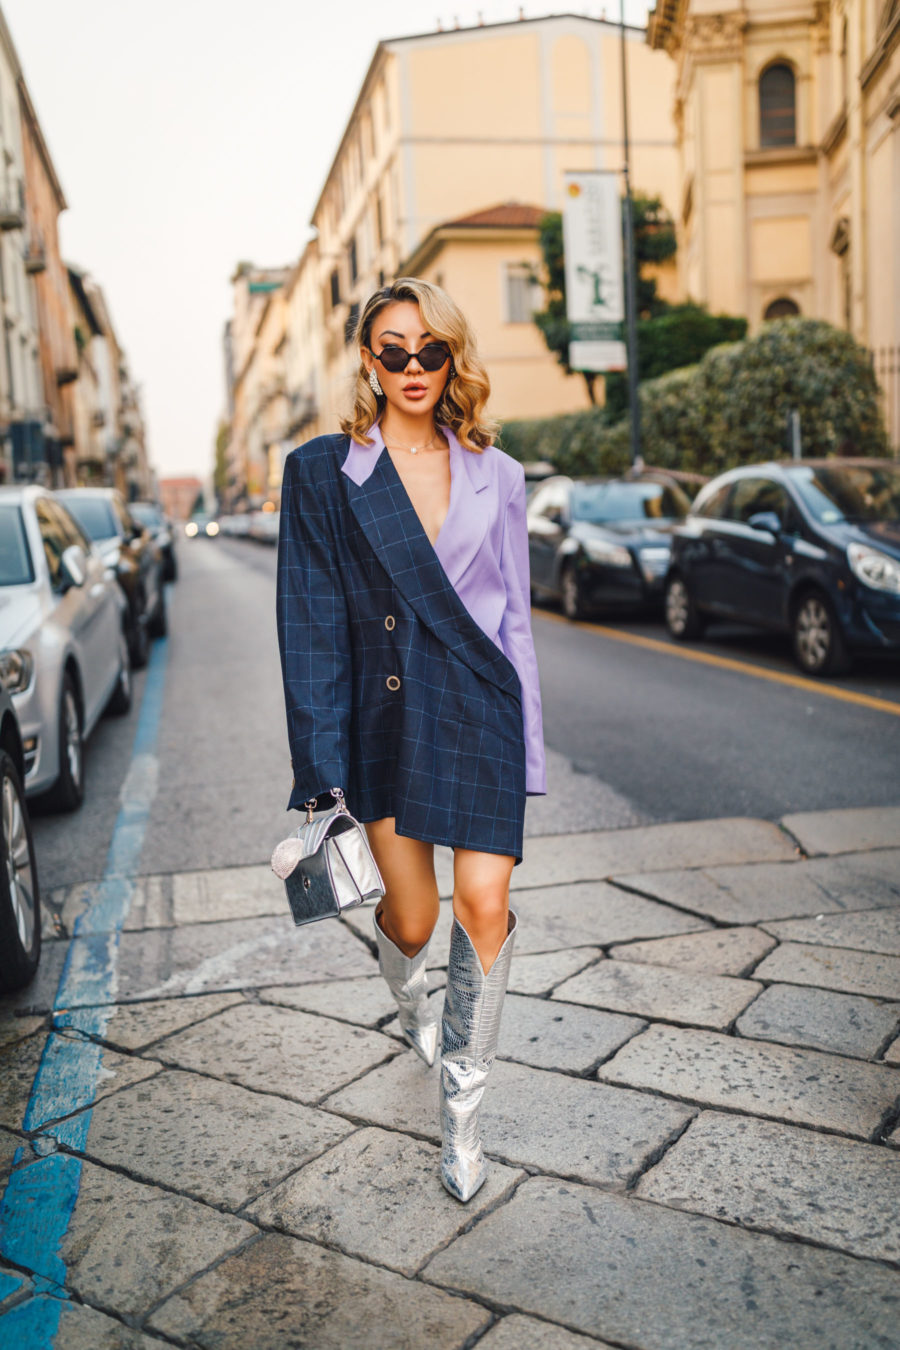 best fall fashion finds, embossed metallic boots // NotJessFashion.com